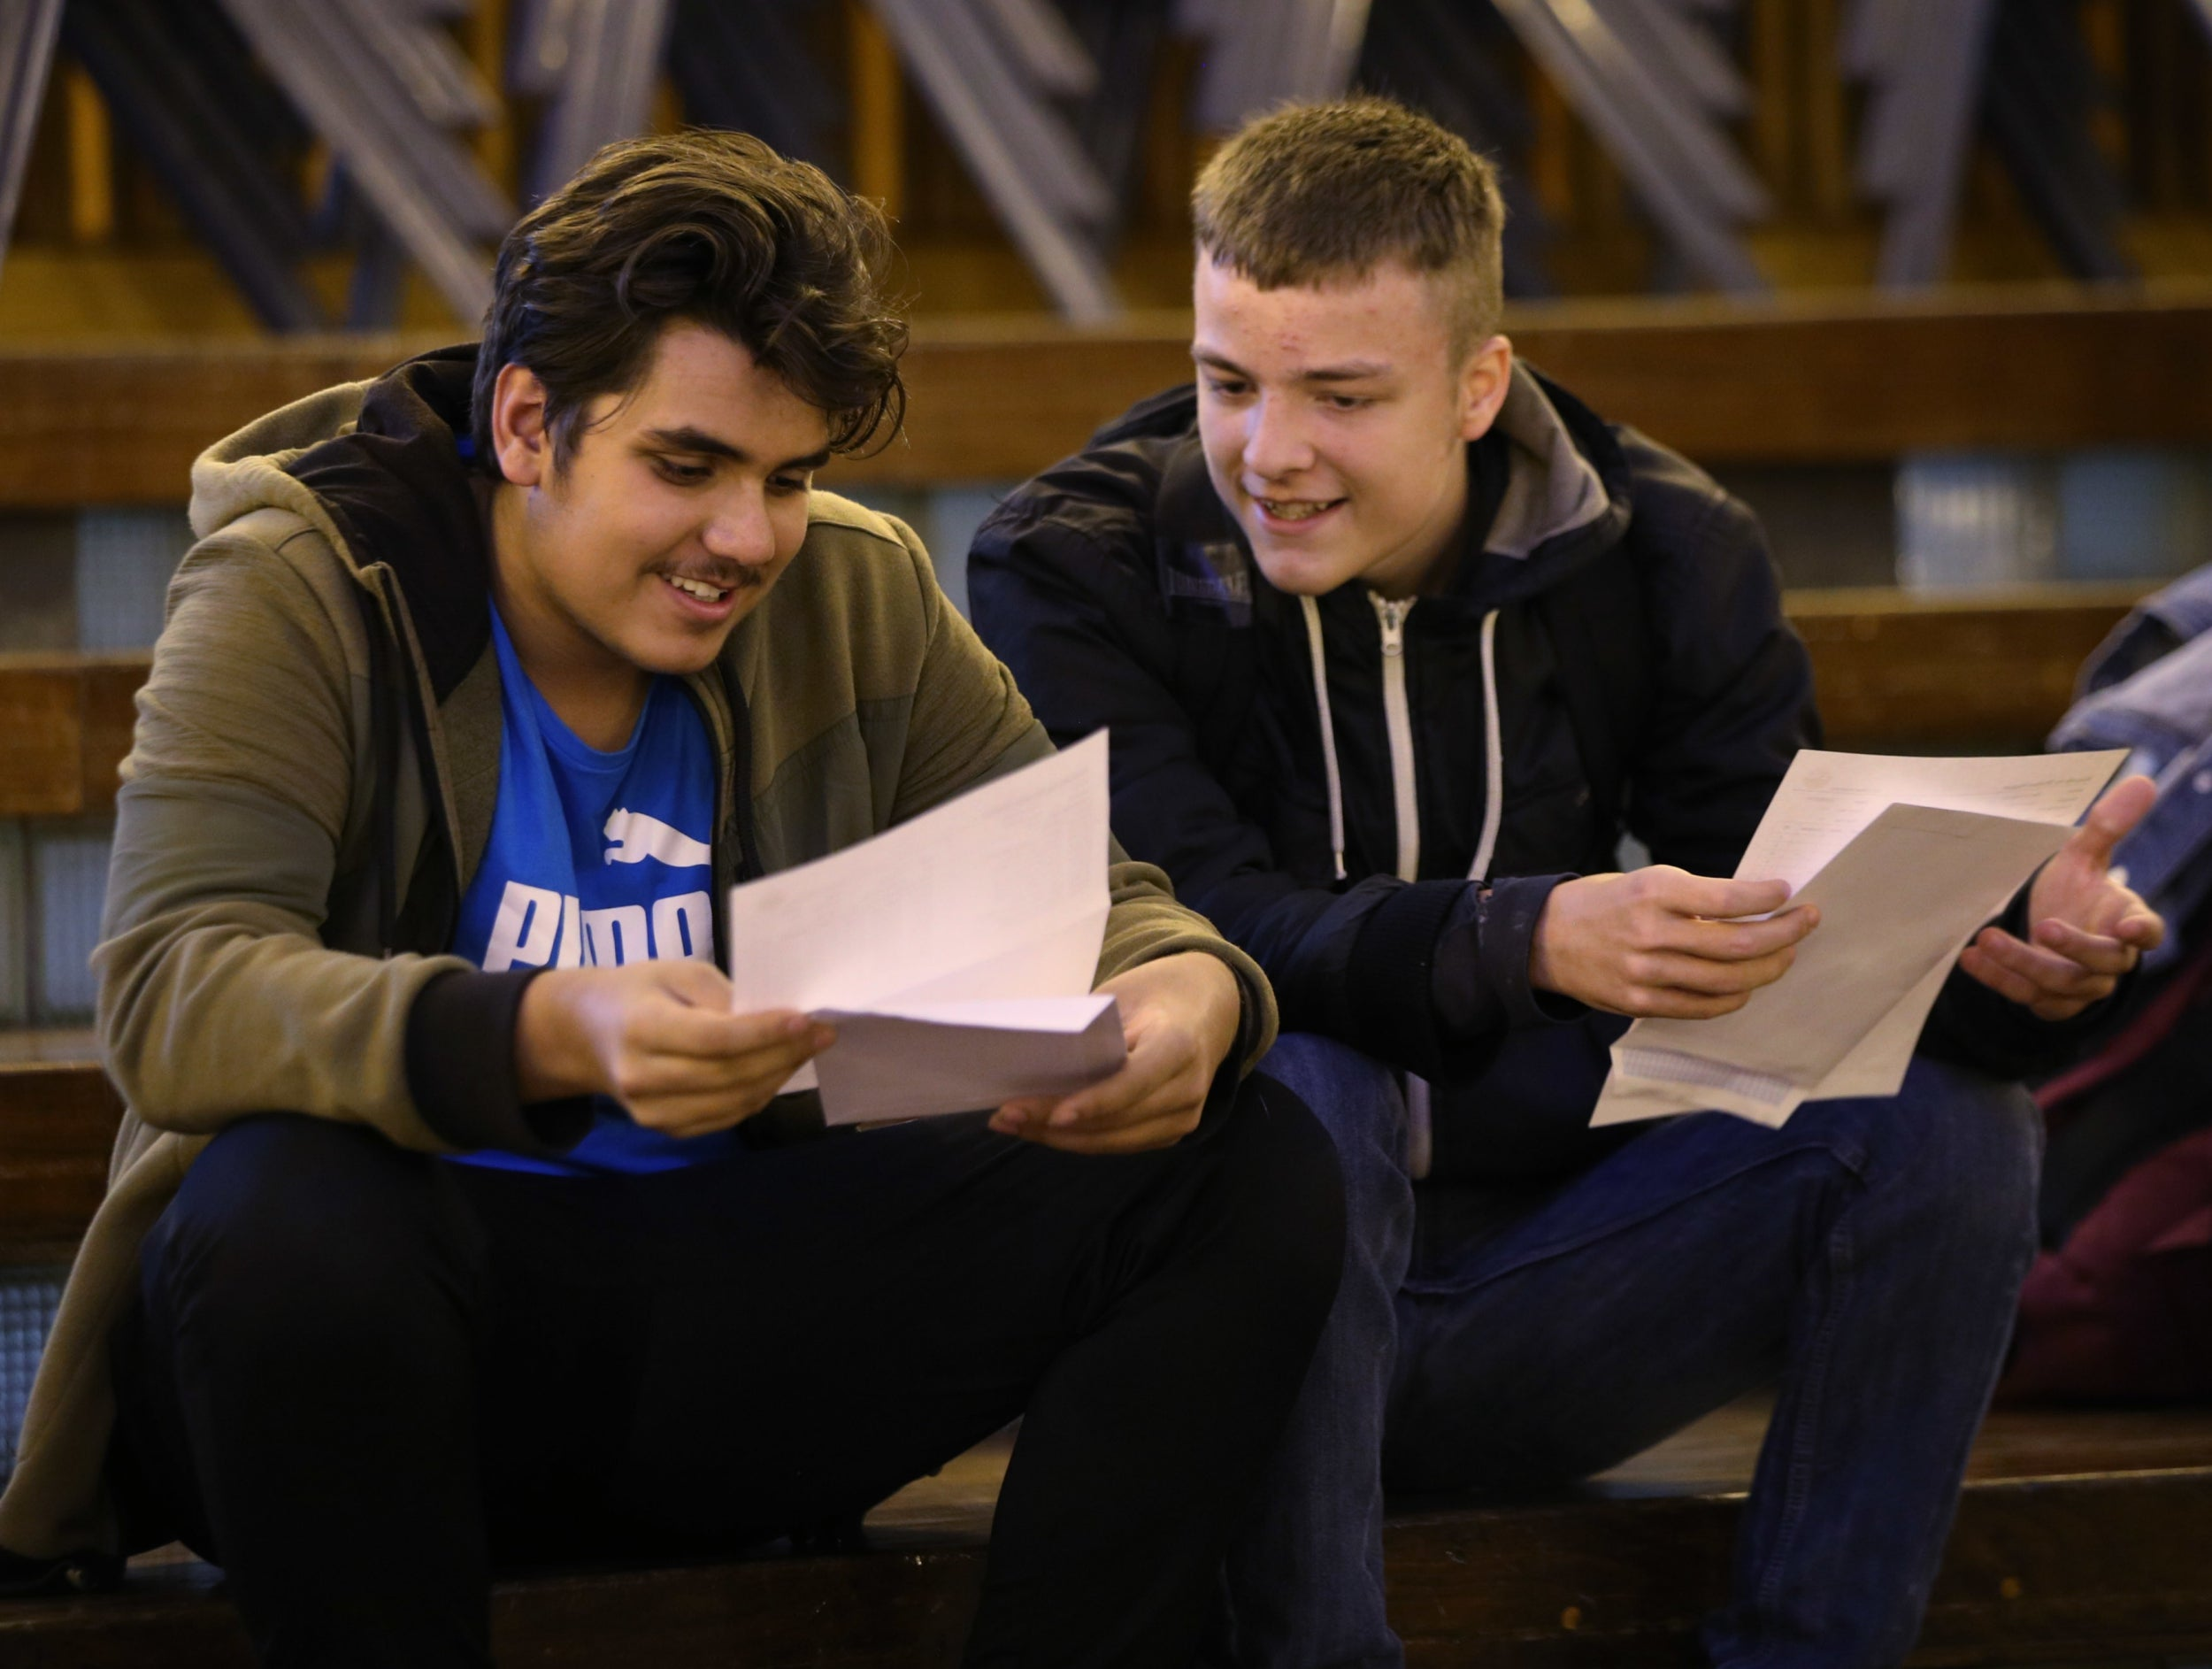 GCSE results day - latest news, breaking stories and comment